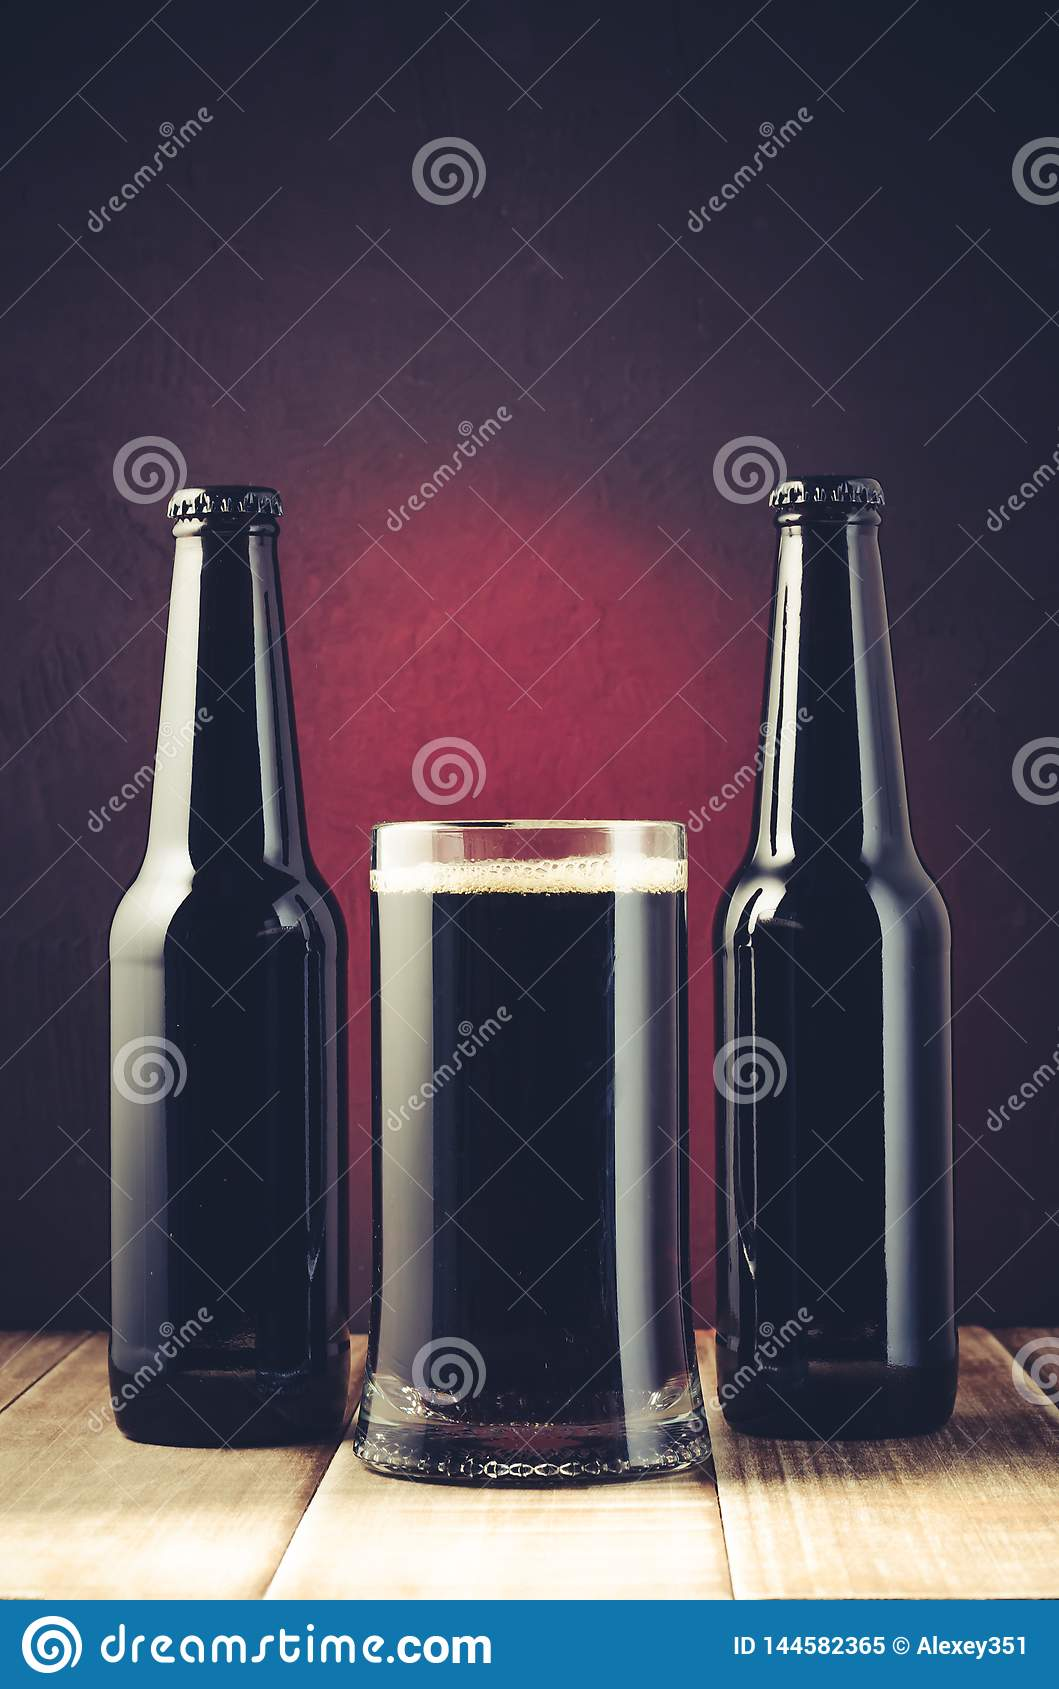 black bottle and glass beer on a red background/black bottle and glass beer on a red background of a wooden shelf. Toned